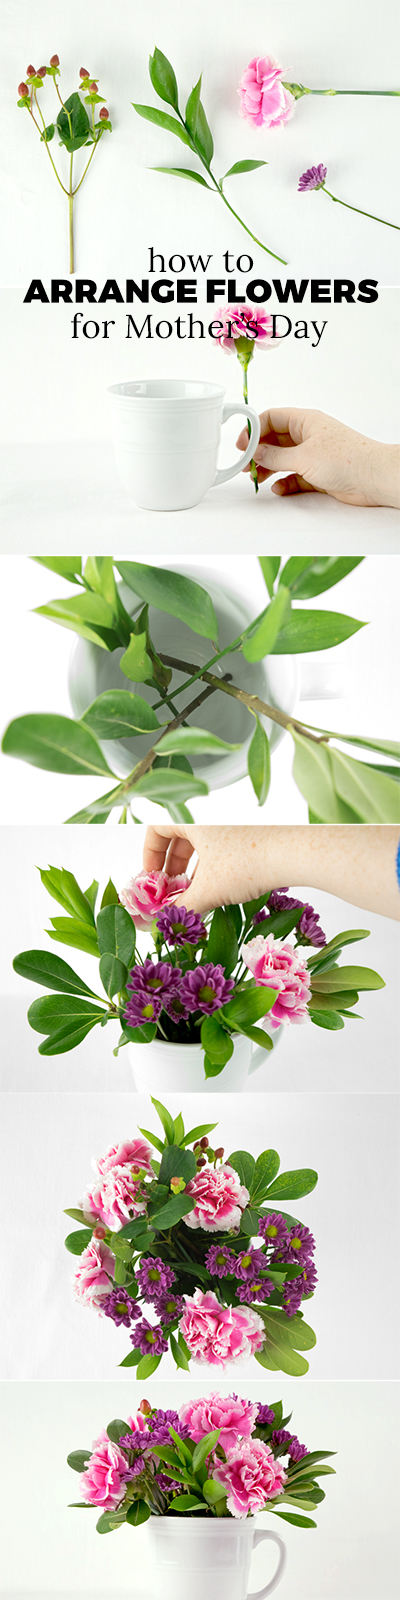 How to arrange flowers for Mother's Day